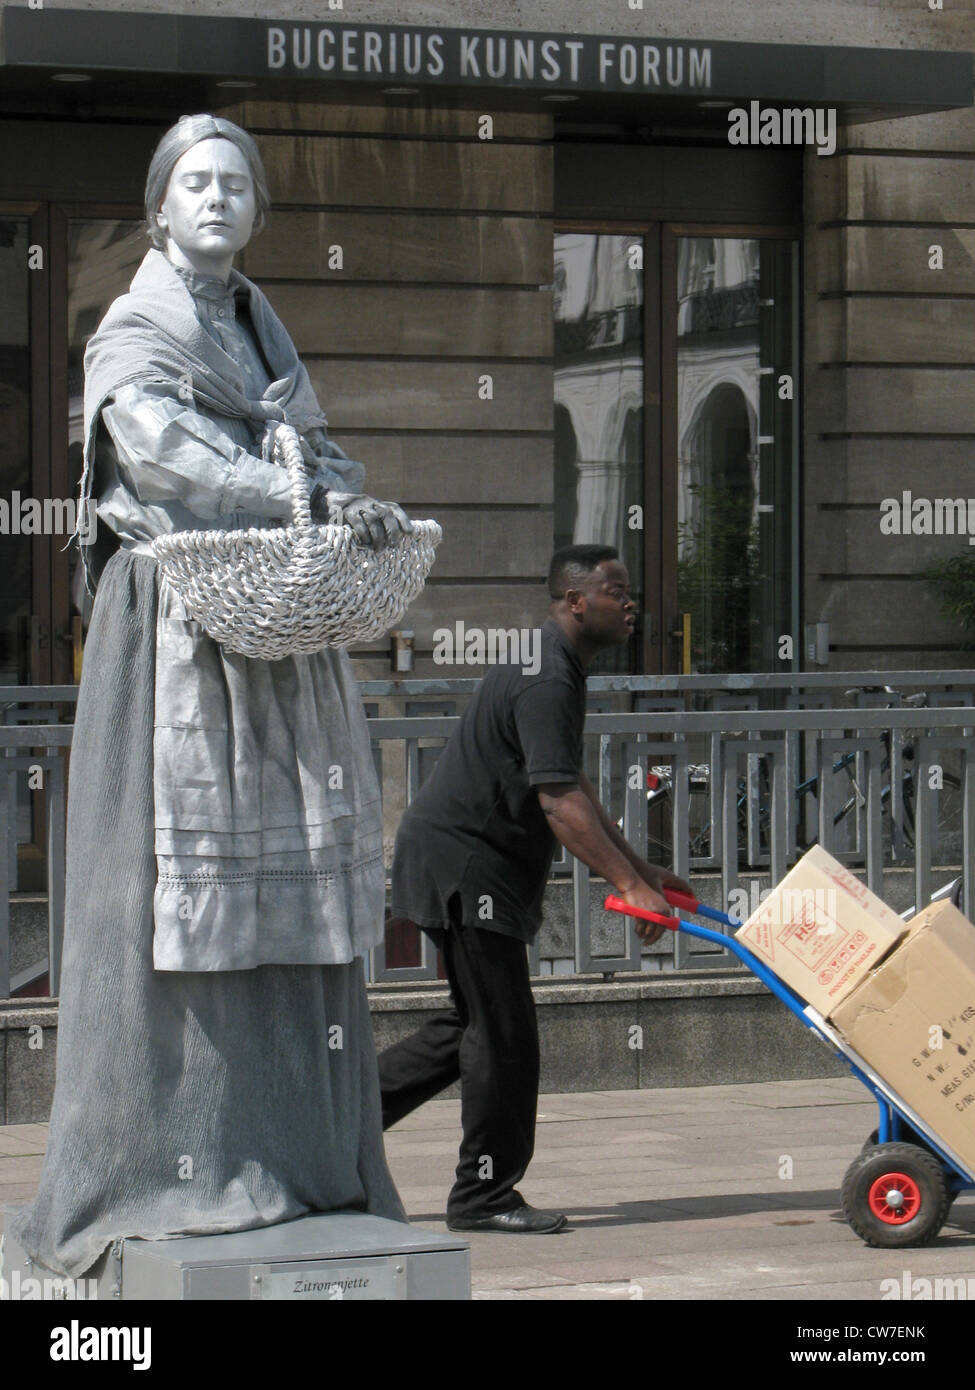 Artist portraying sculpture in front of the Bucerius Art Forum on